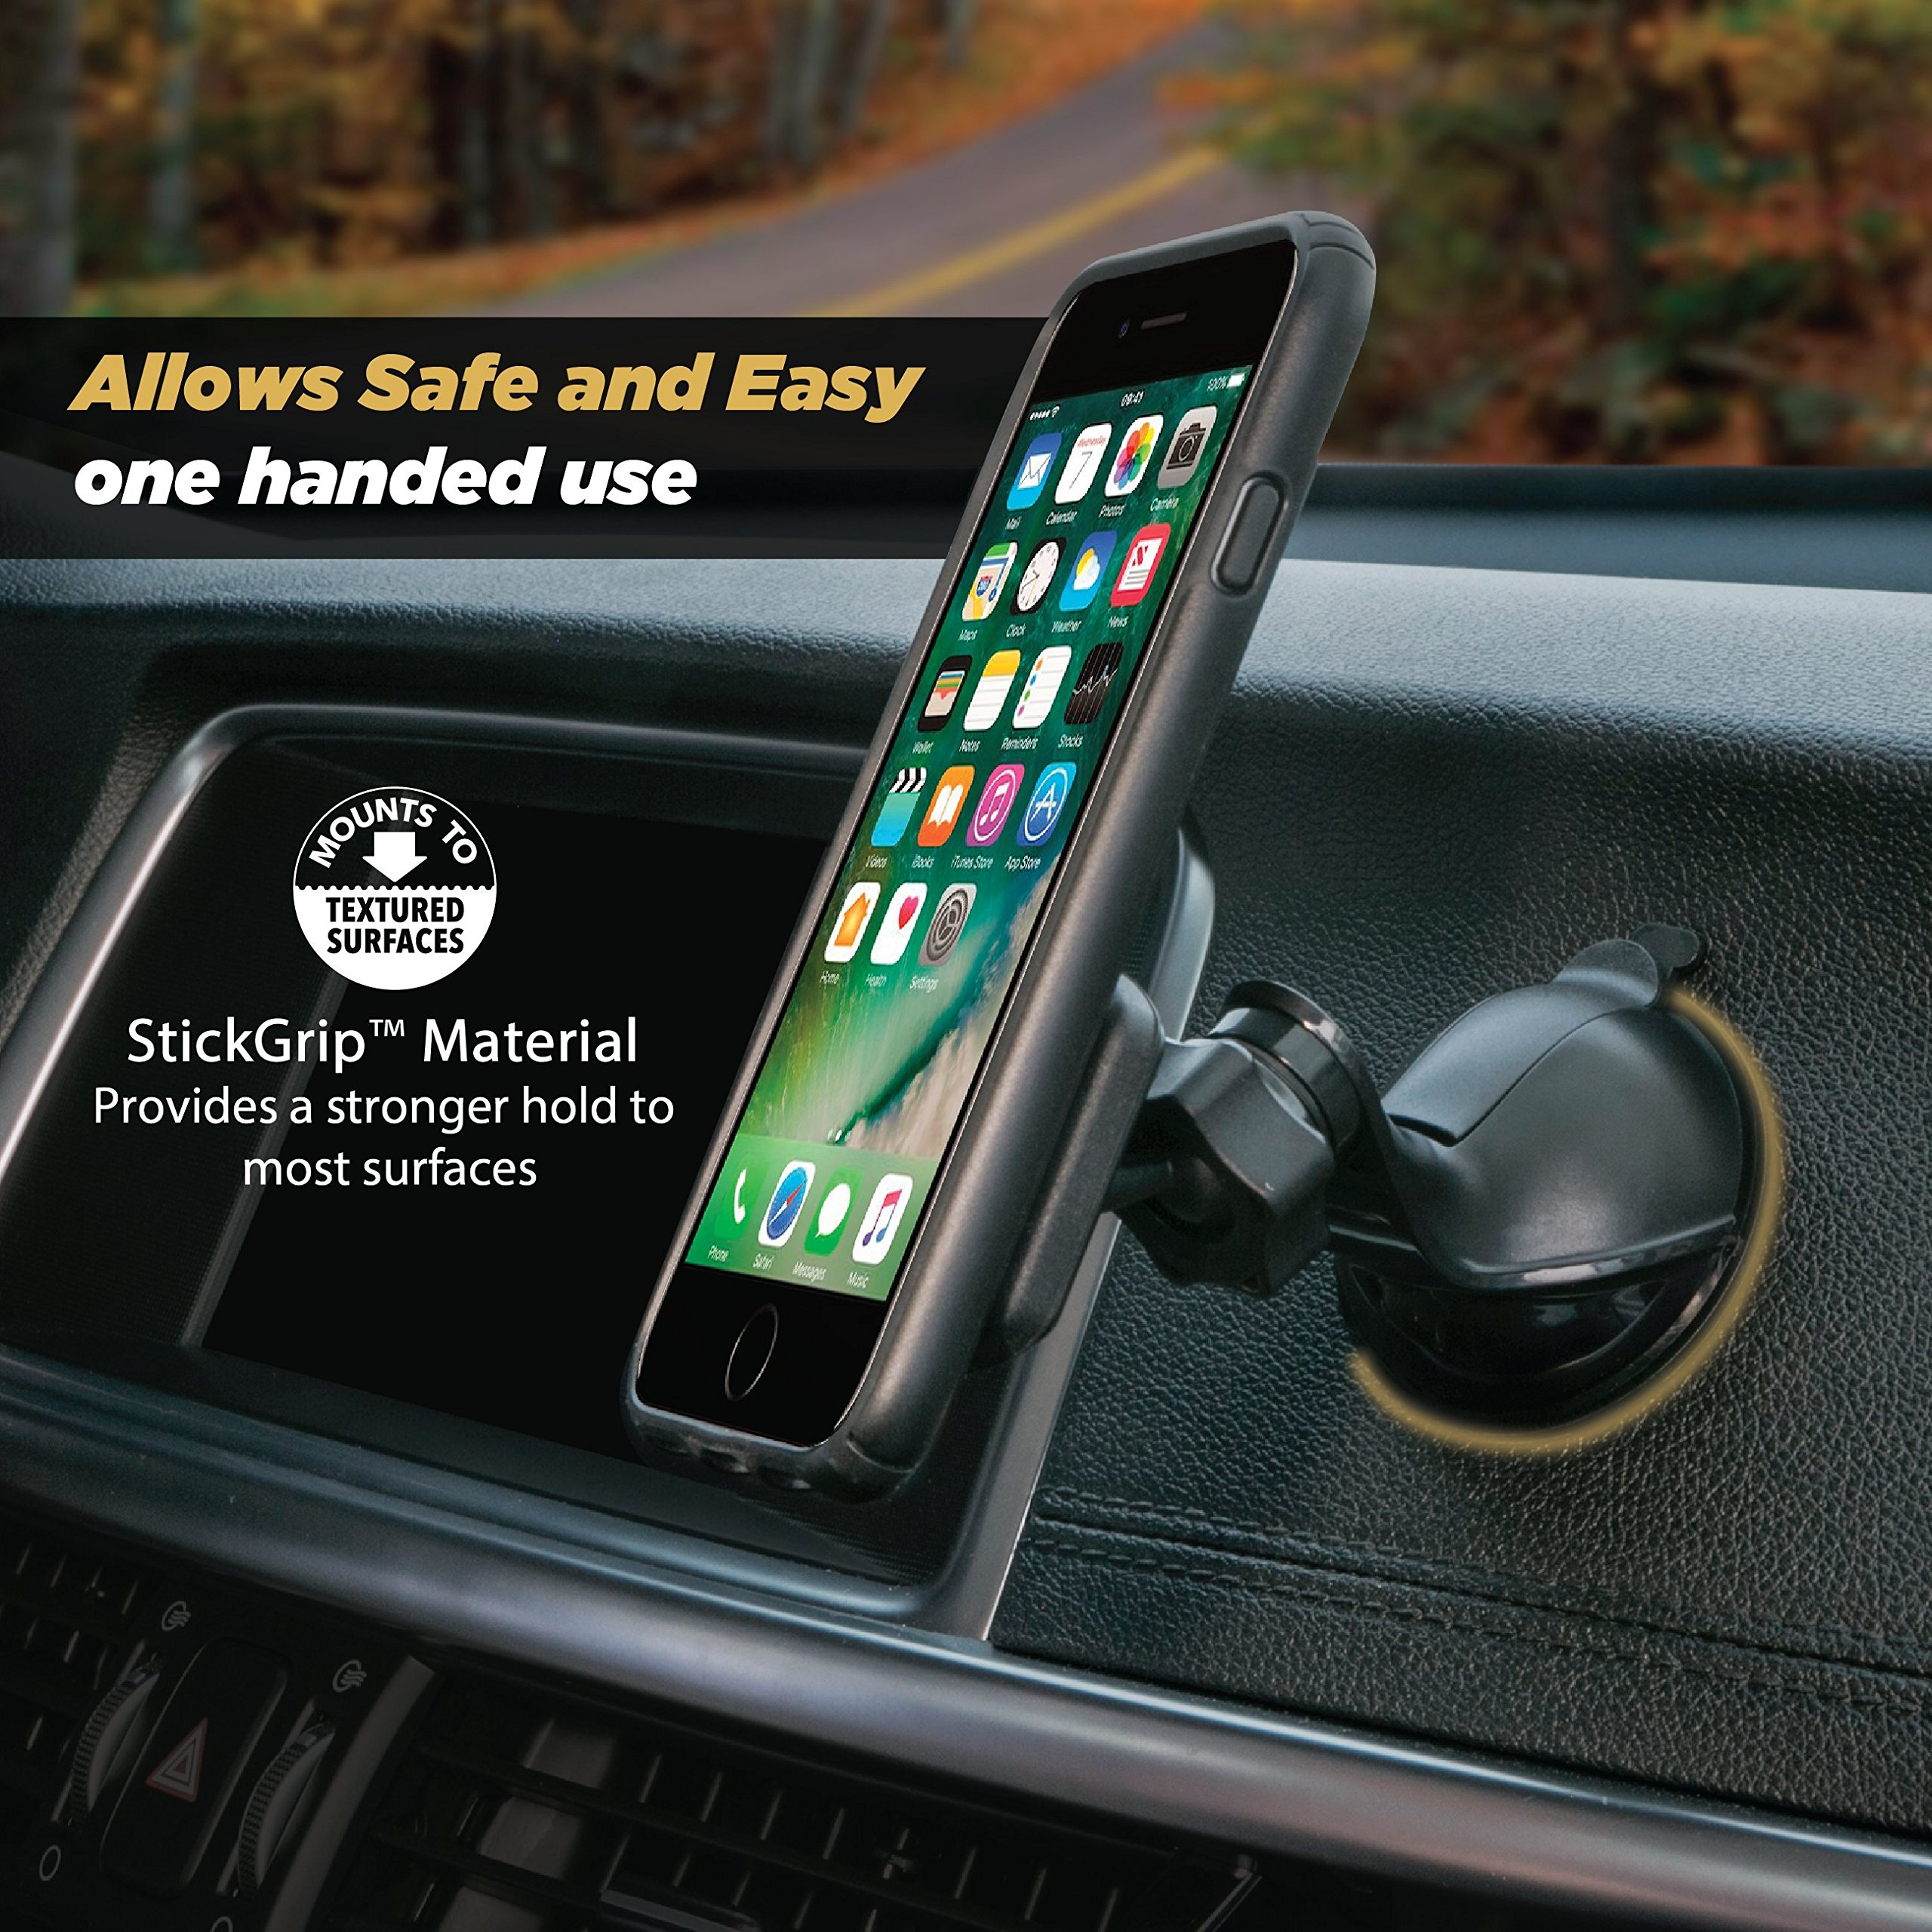 SCOSCHE MAGWSM2 MagicMount Universal Magnetic Phone/GPS Suction Cup Mount for the Car, Home or Office by Scosche (Image #2)